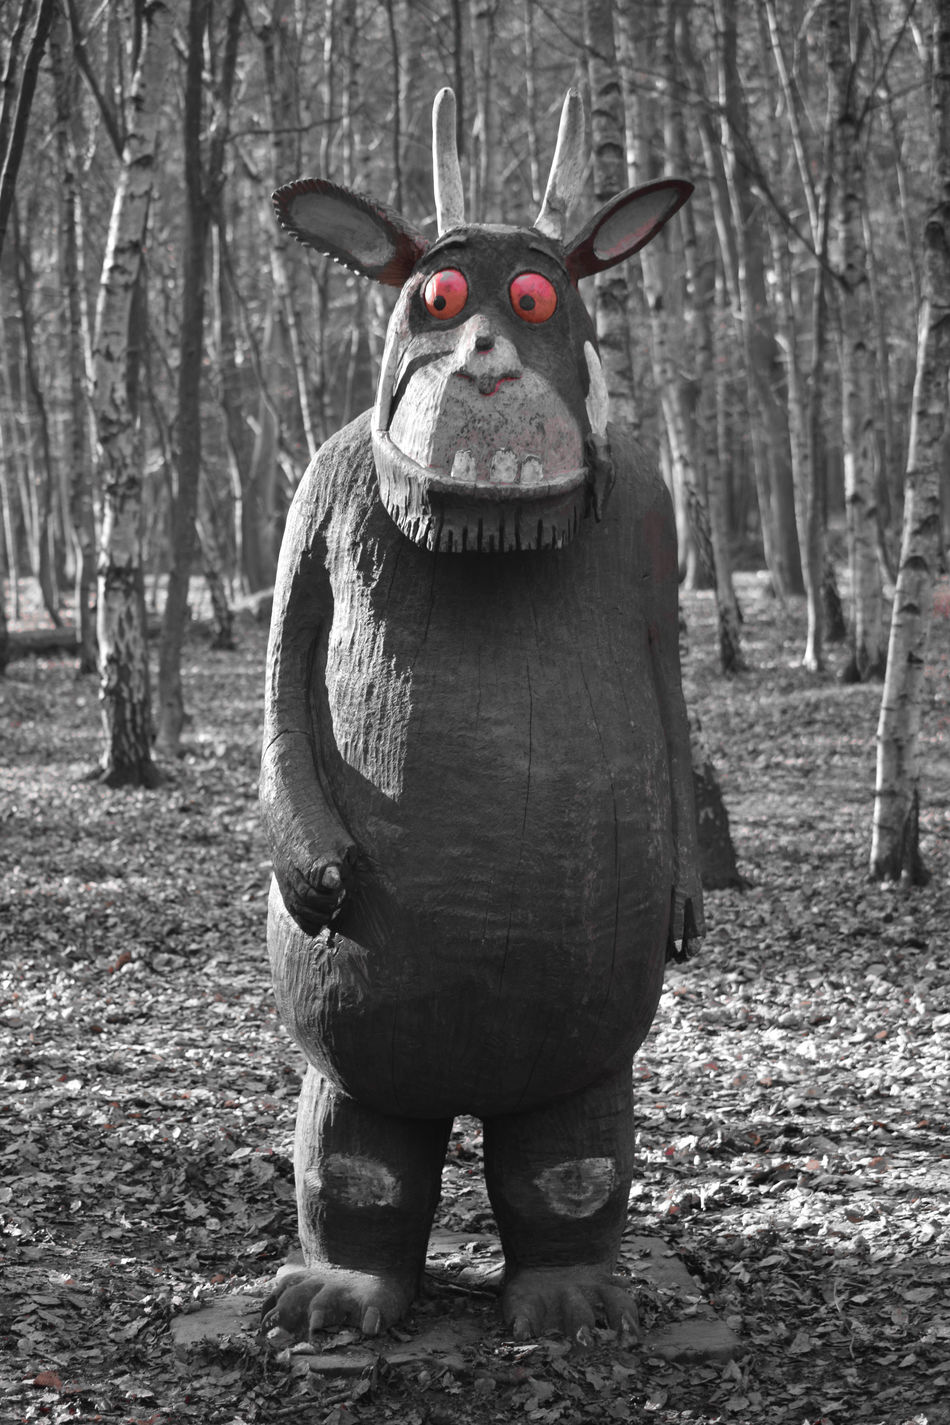 Black & White Black And White Day Forest Forest Walk Gruffalo Gruffalo Hunt Gruffalo Trail Isolated Red Lots Of Leaves Nature No People Outdoors Red Eyes Tree Trees WoodLand